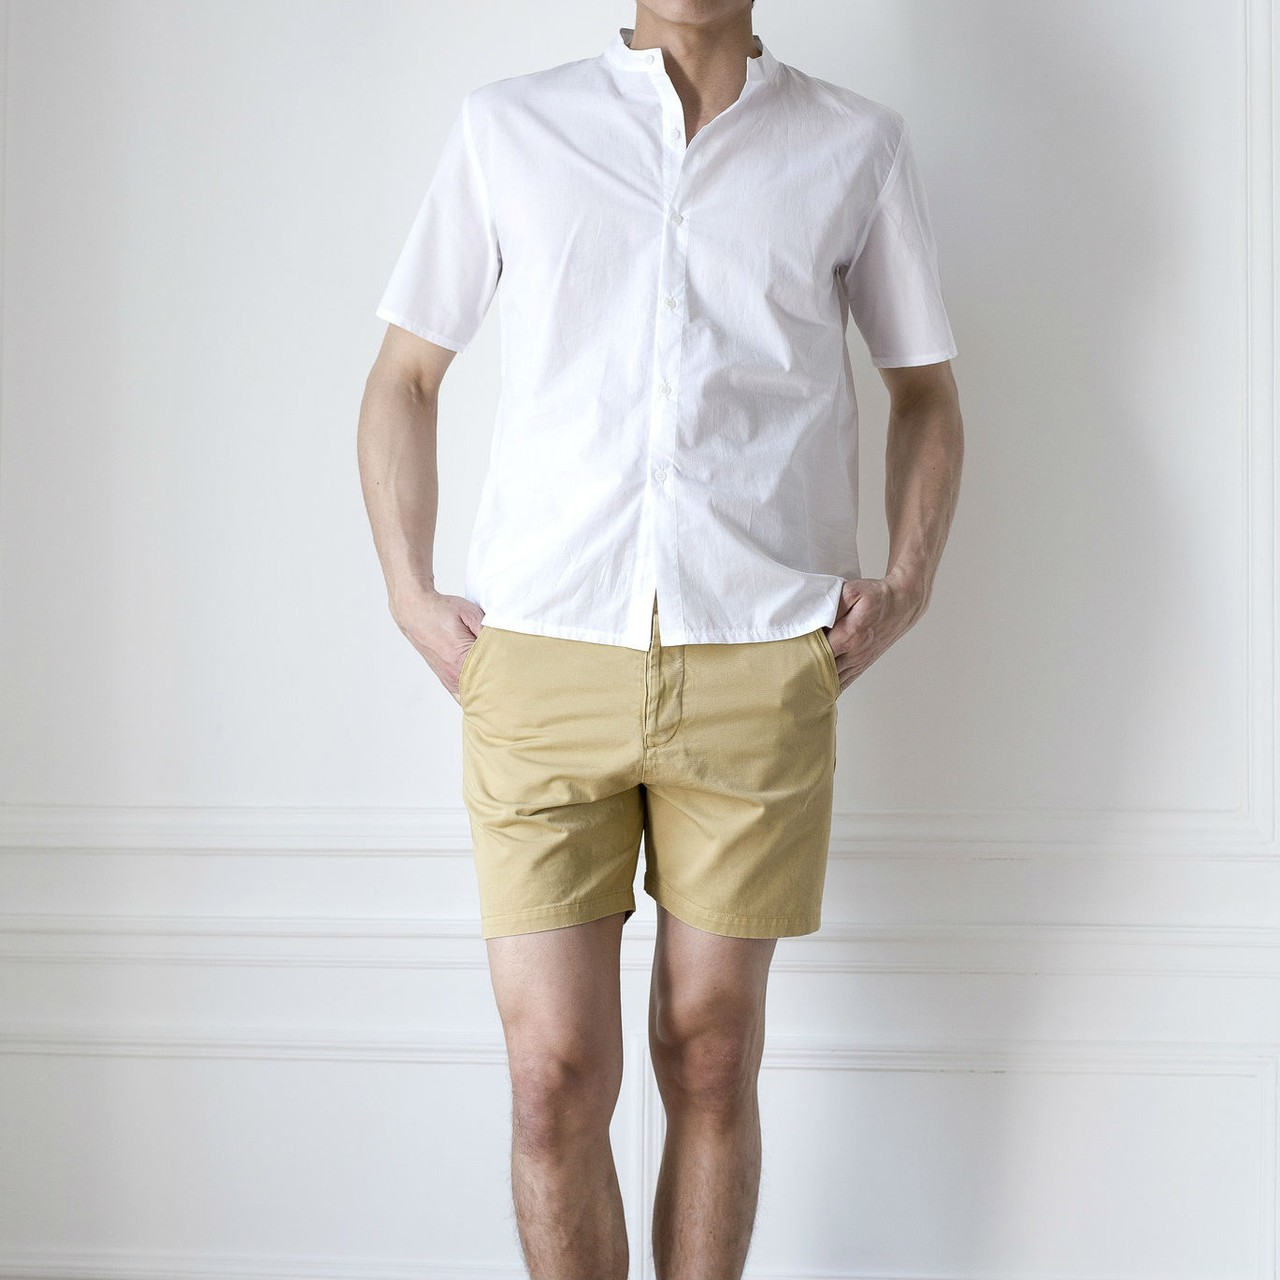 The White Briefs Celt Shorts in camel